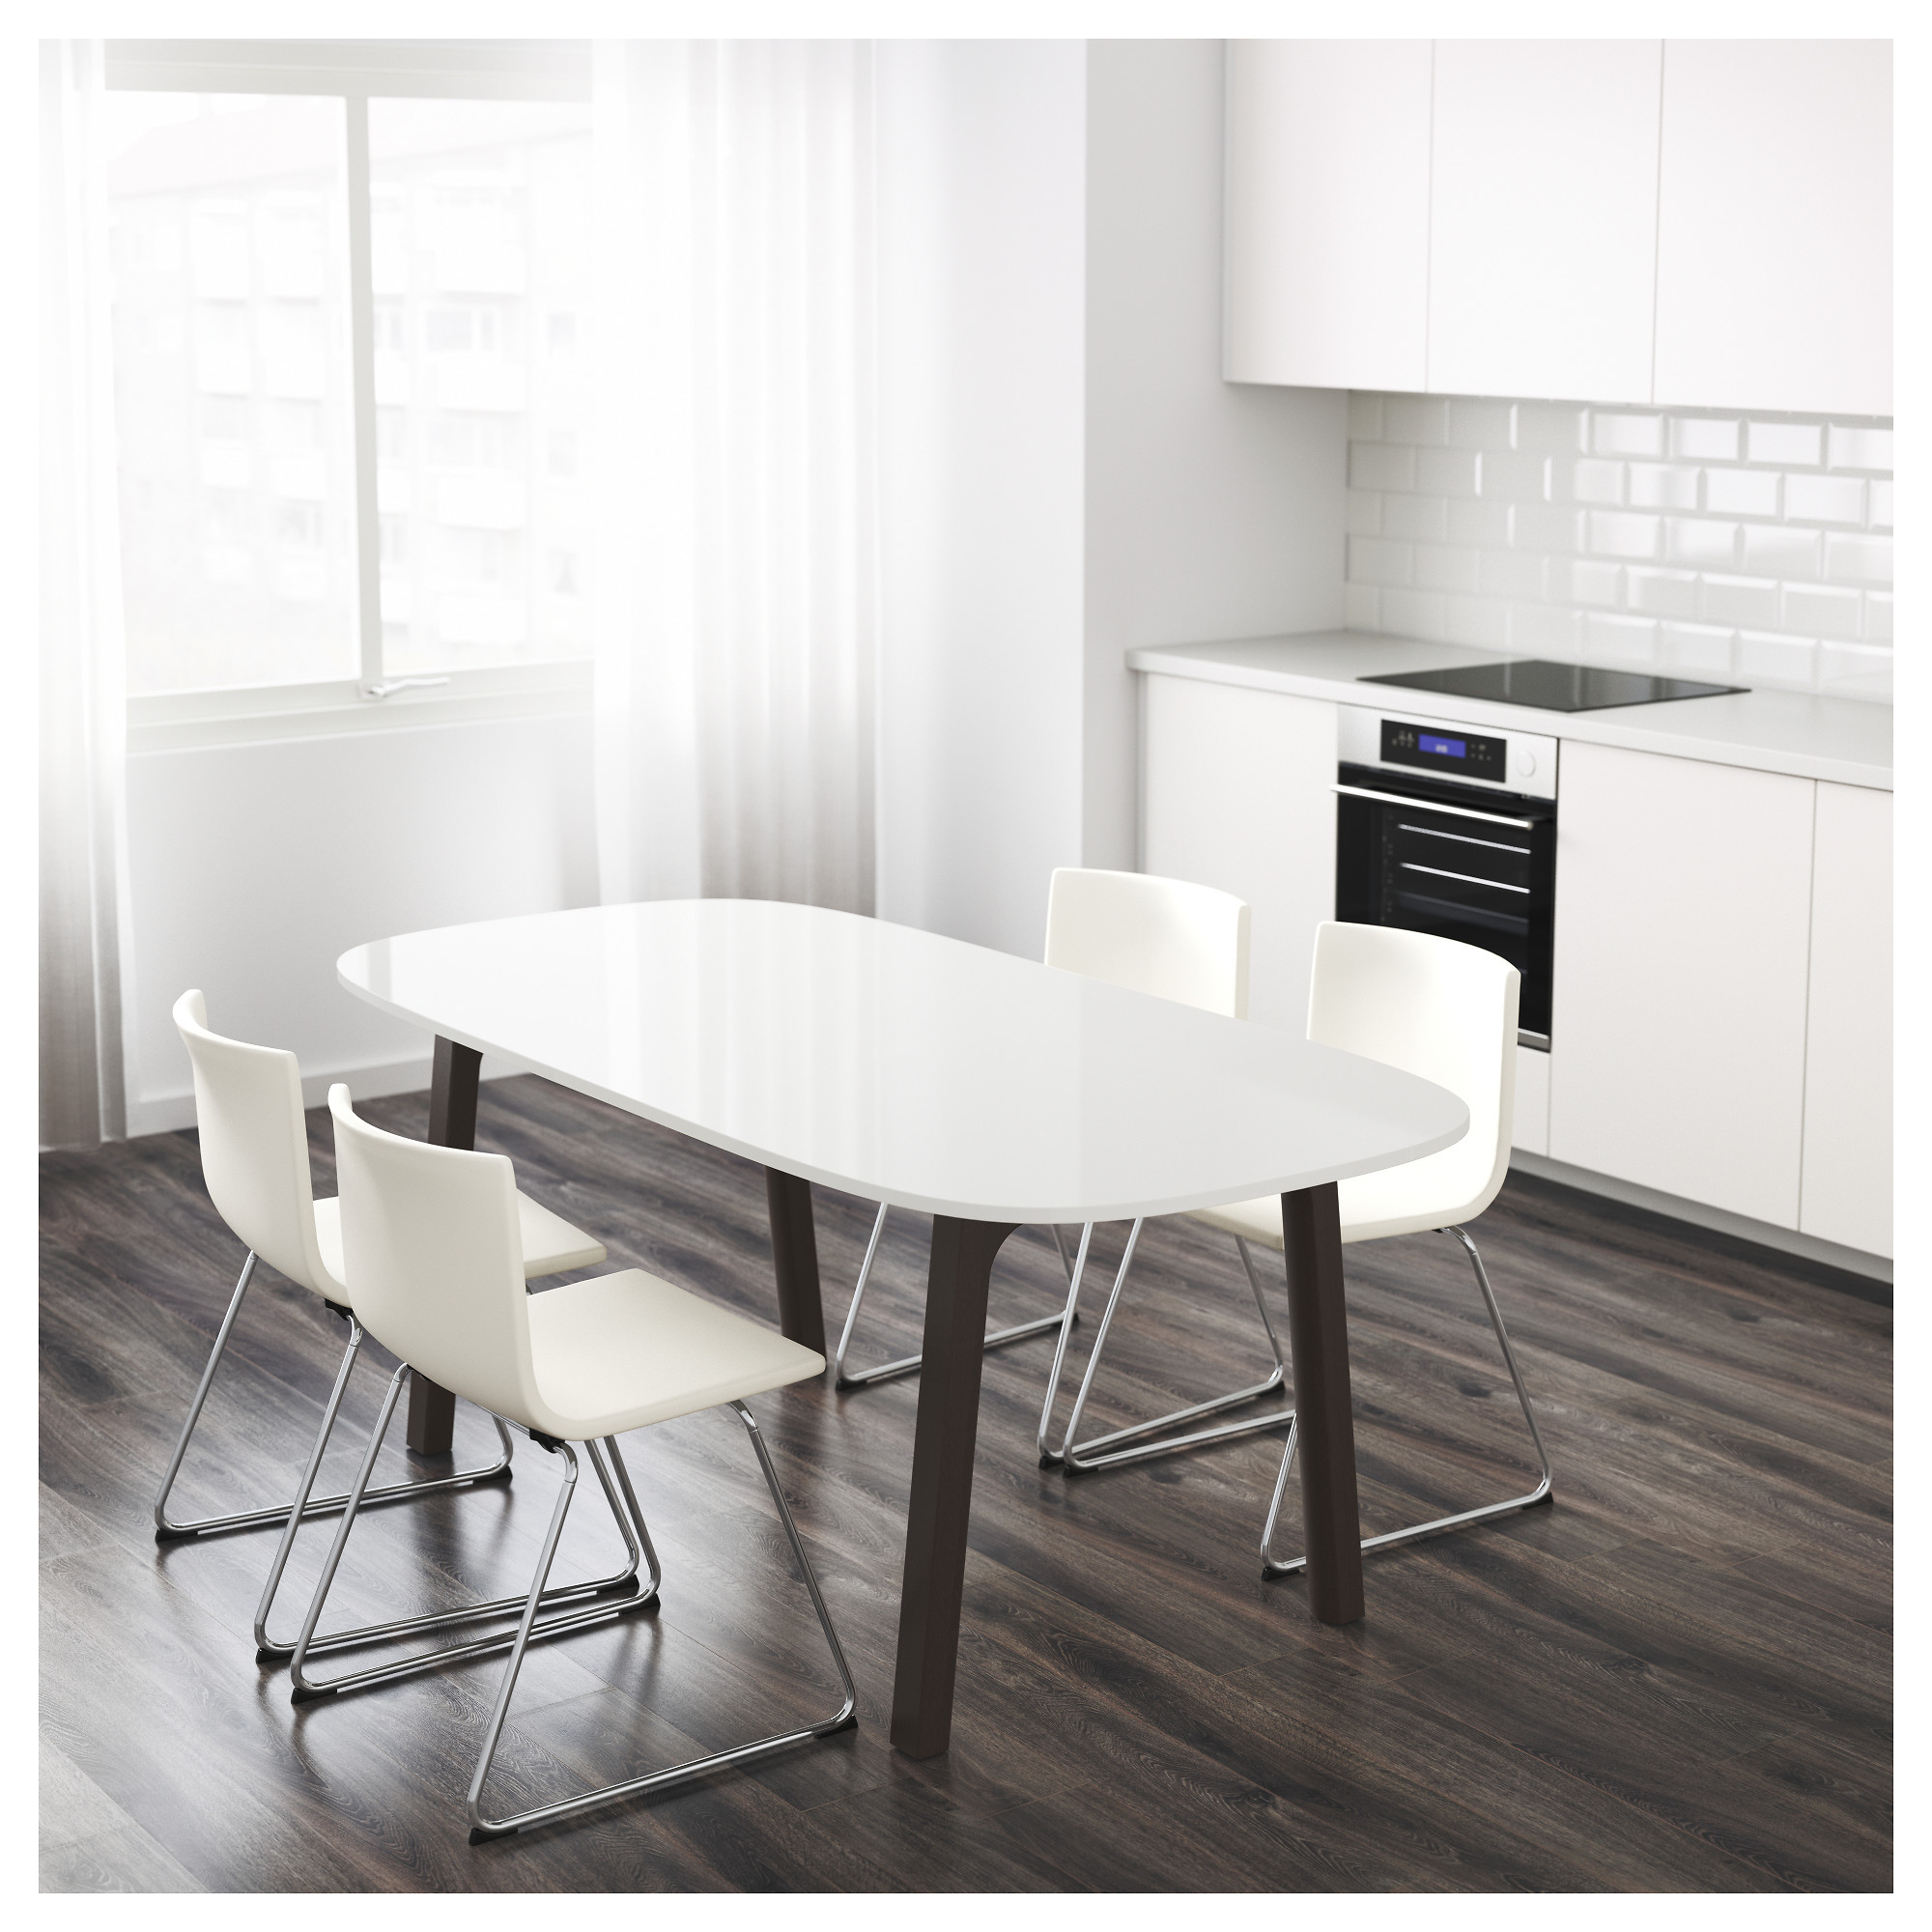 Kitchen Table Review hen how to Home Decorating Ideas